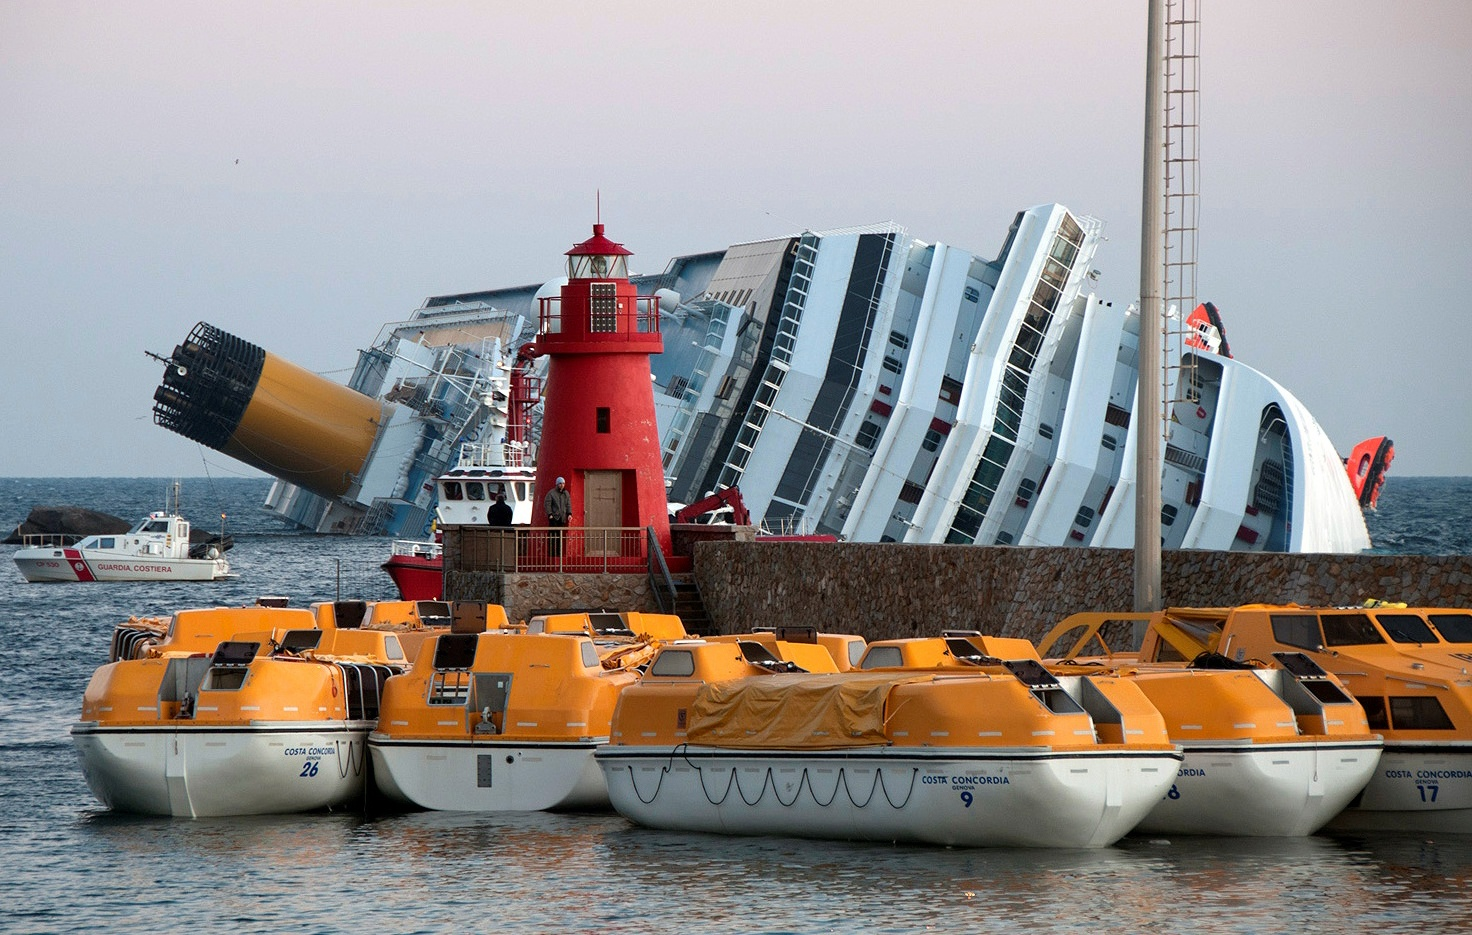 costa concordia safety